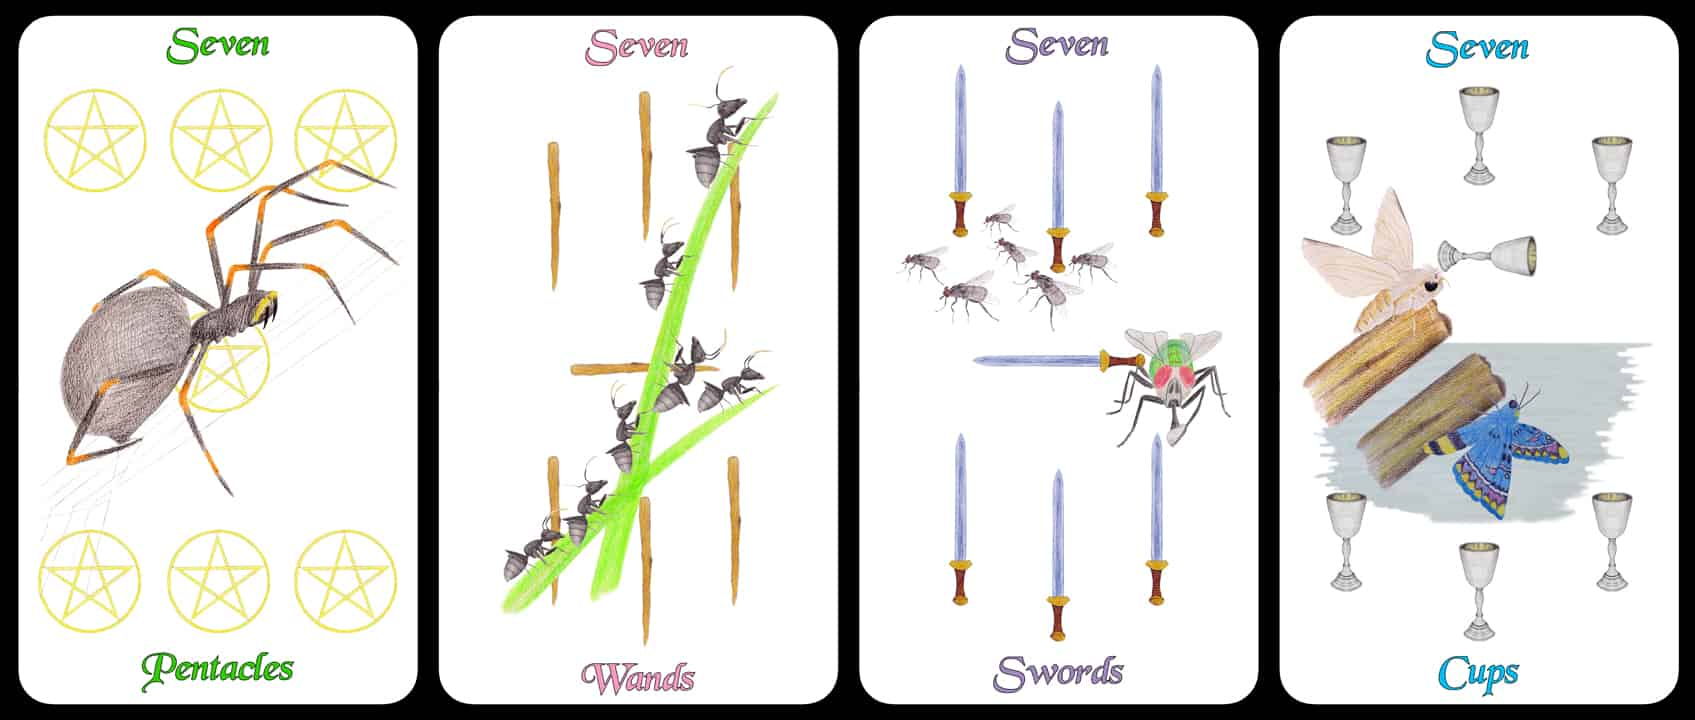 The Sevens - The Arthropoda Tarot Deck by Linda Ursin